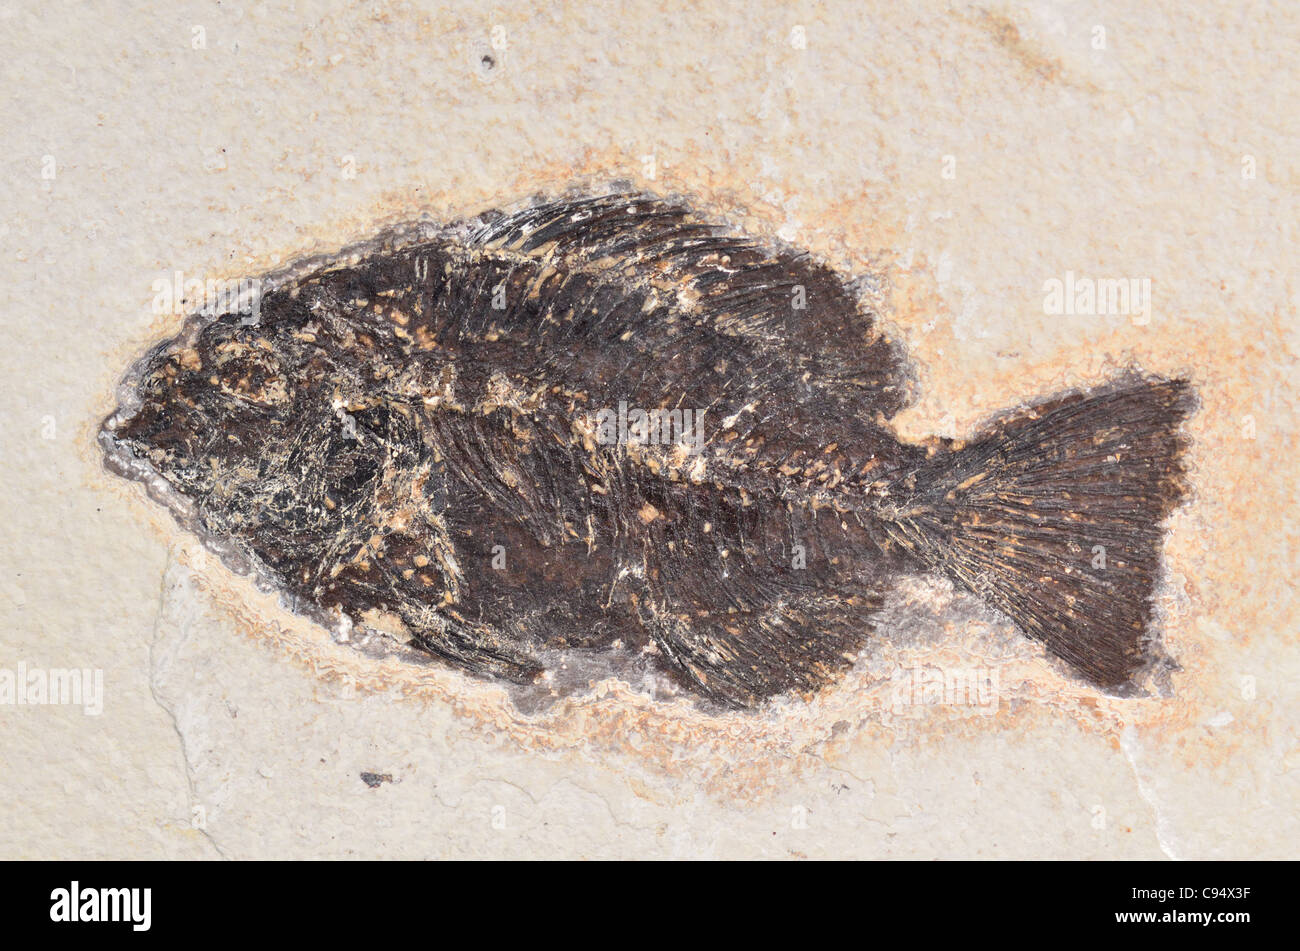 Fish fossil preserved in rock matrix. - Stock Image